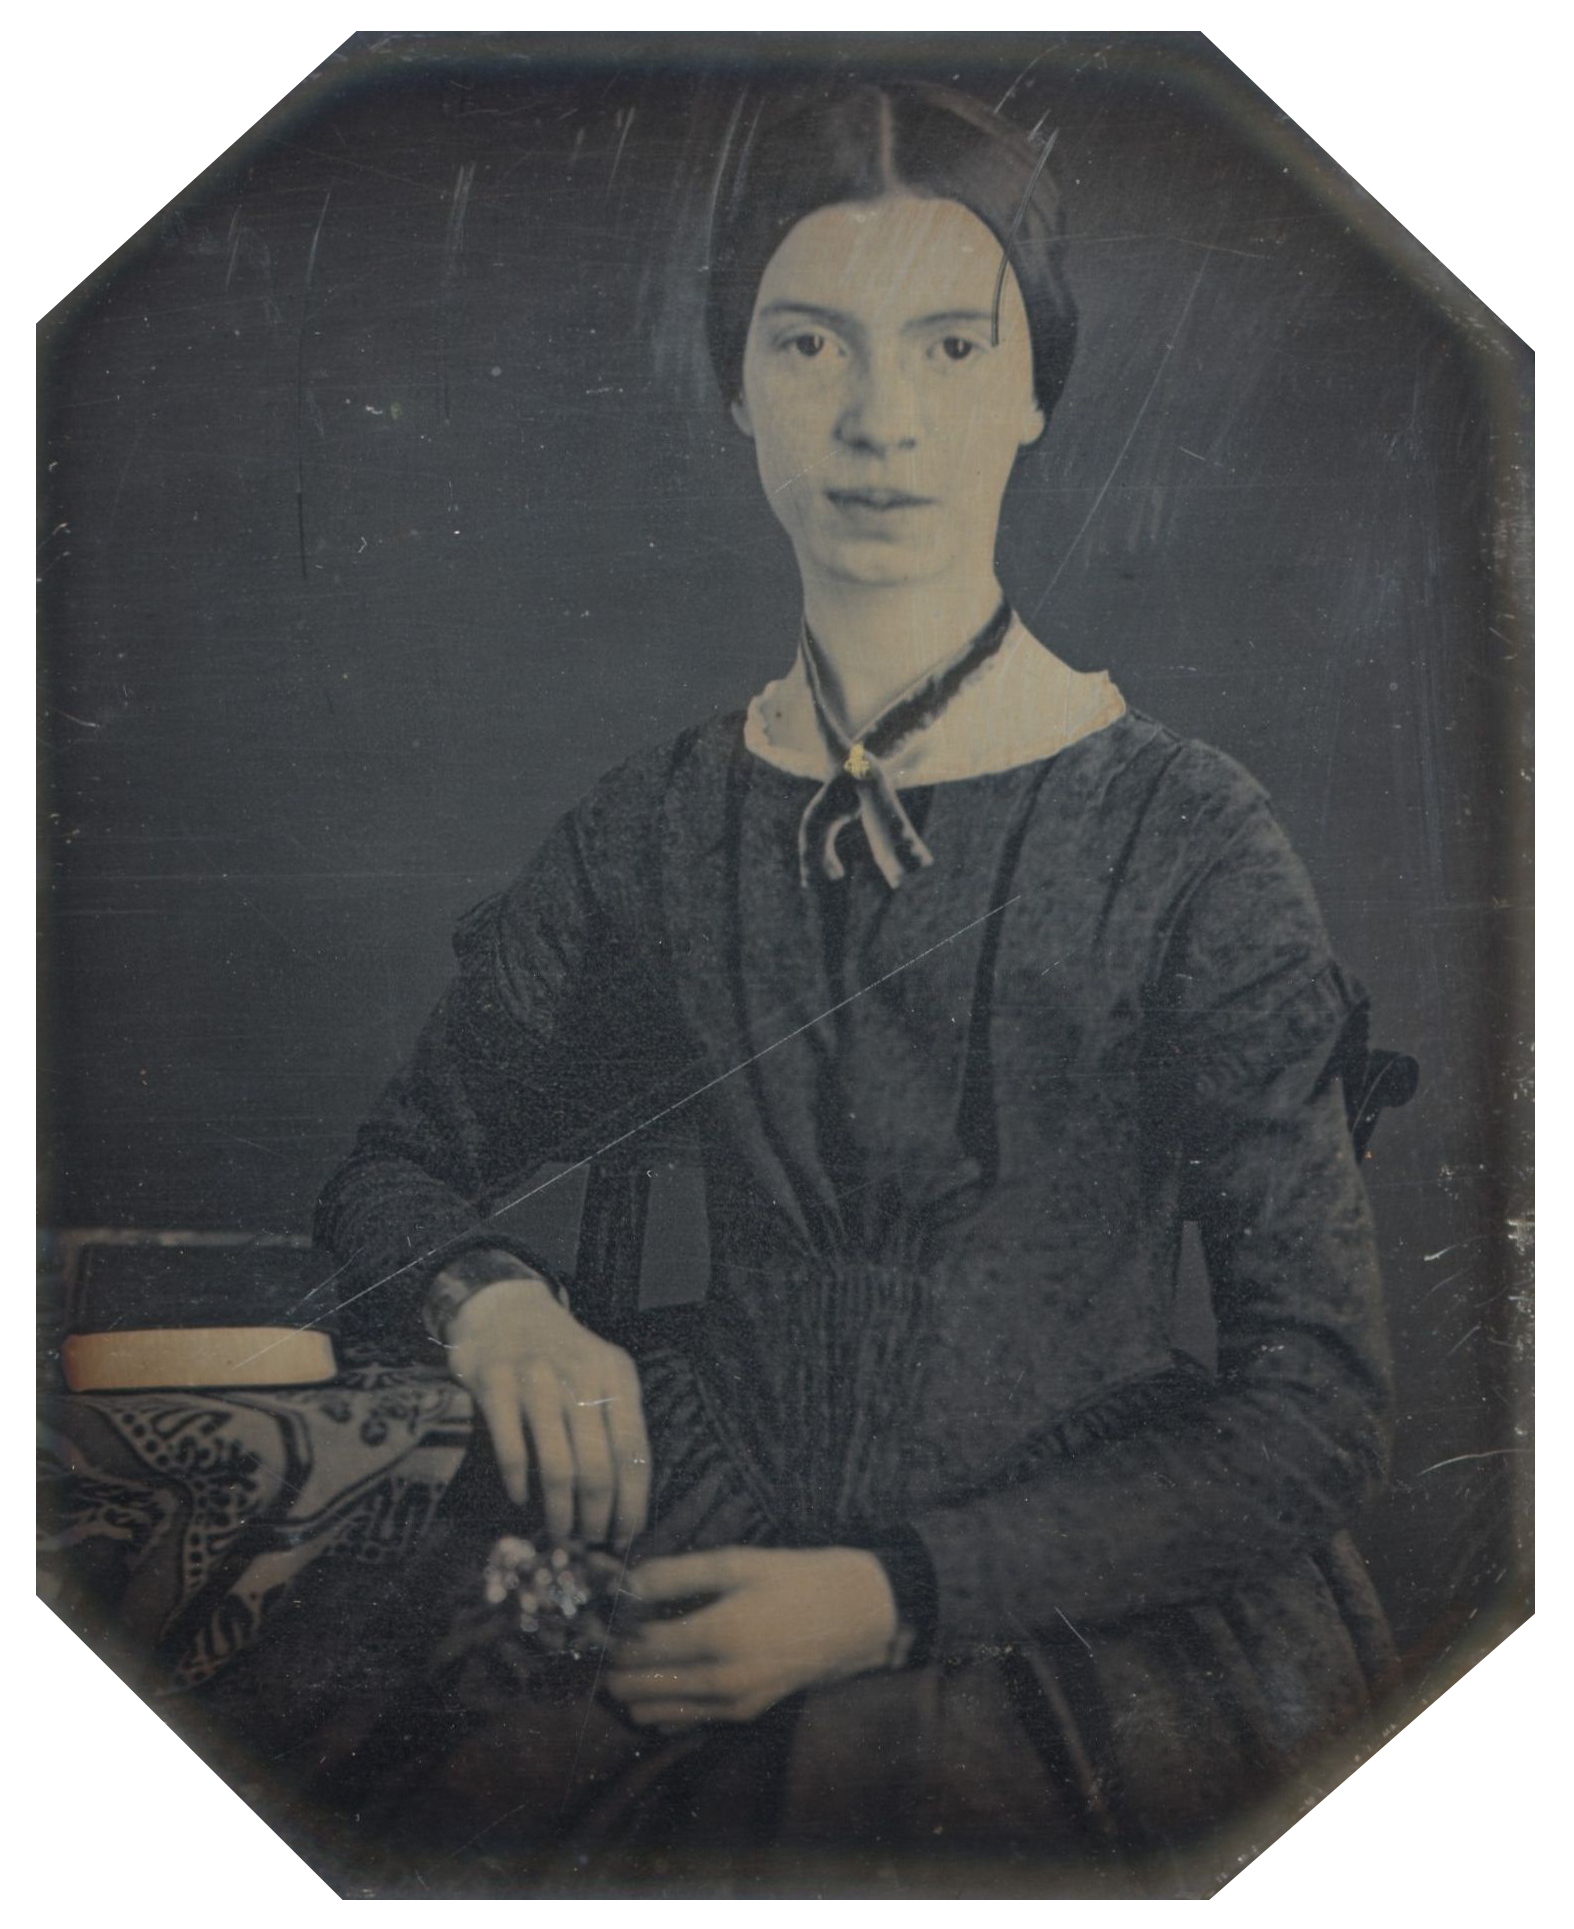 [[Daguerreotype]] taken at [[Mount Holyoke College|Mount Holyoke]], December 1846 or early 1847; the only authenticated portrait of Emily Dickinson after childhood<ref>D'Arienzo (2006); the original is held by Amherst College Archives and Special Collections</ref>